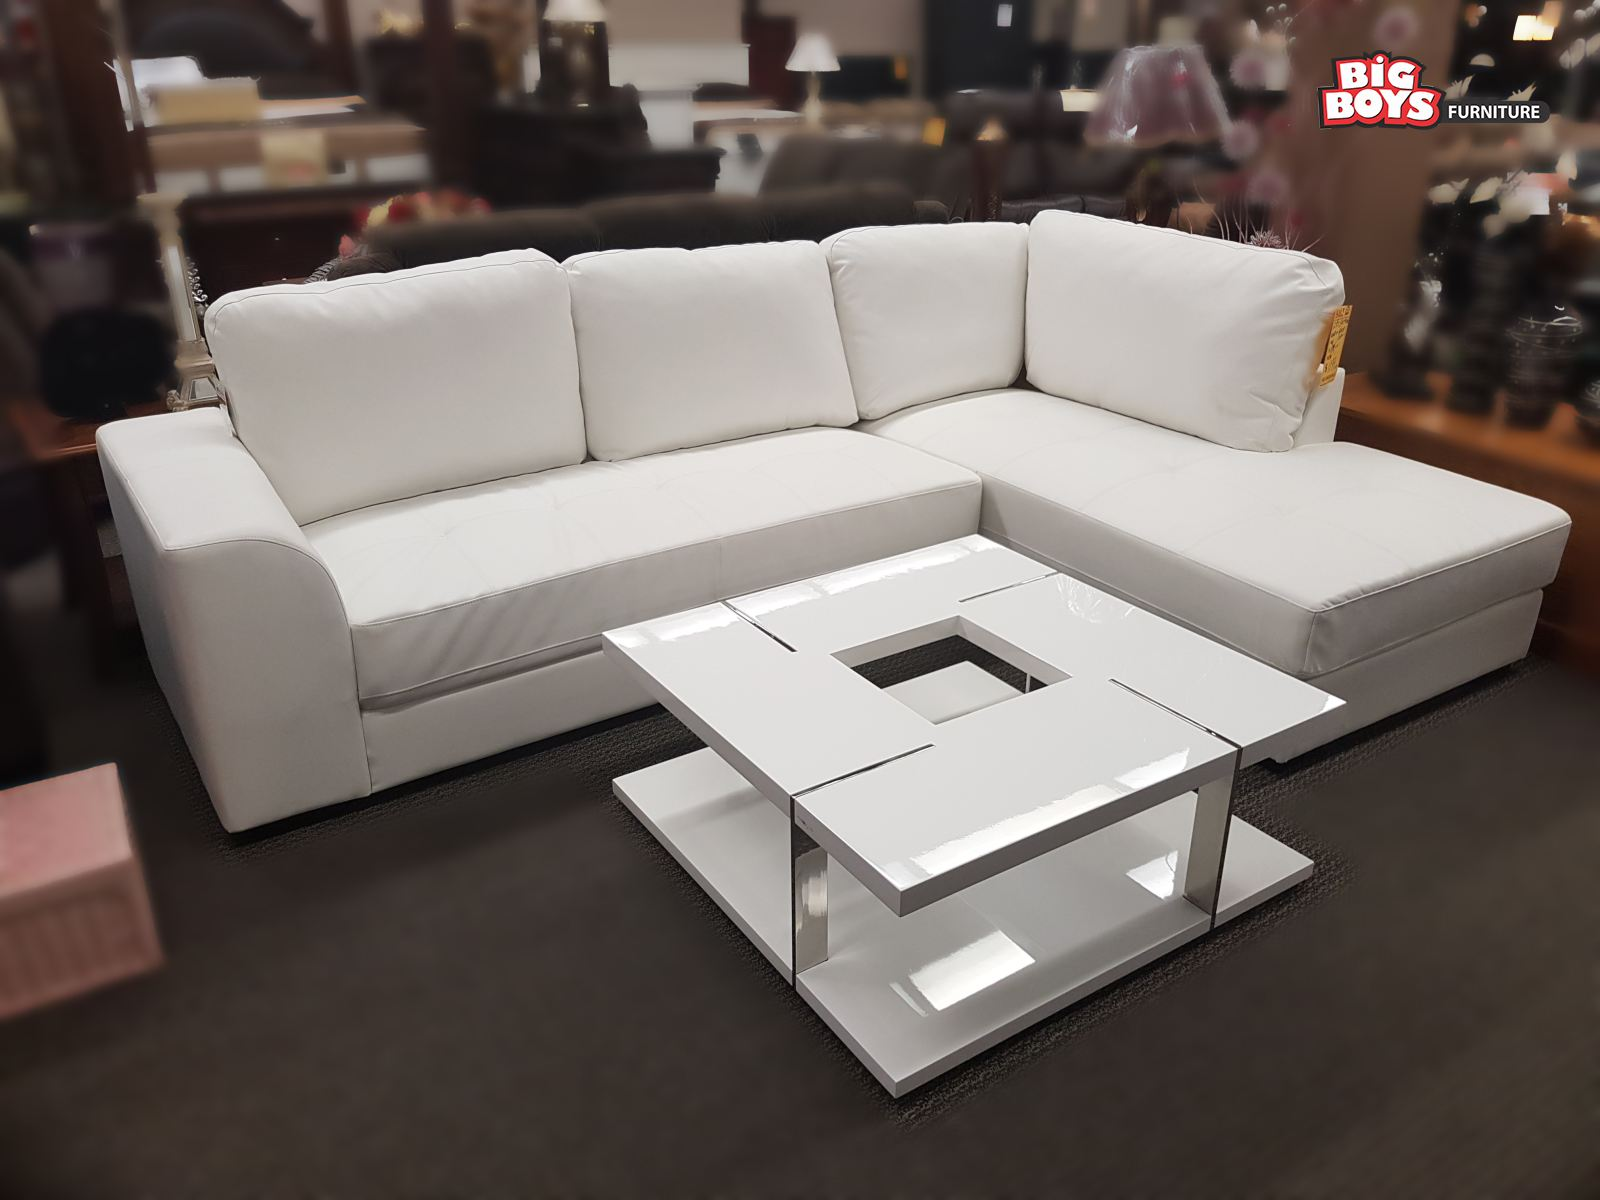 Furniture Sales Black Friday Best Black Friday Furniture Sales 2017 Small House